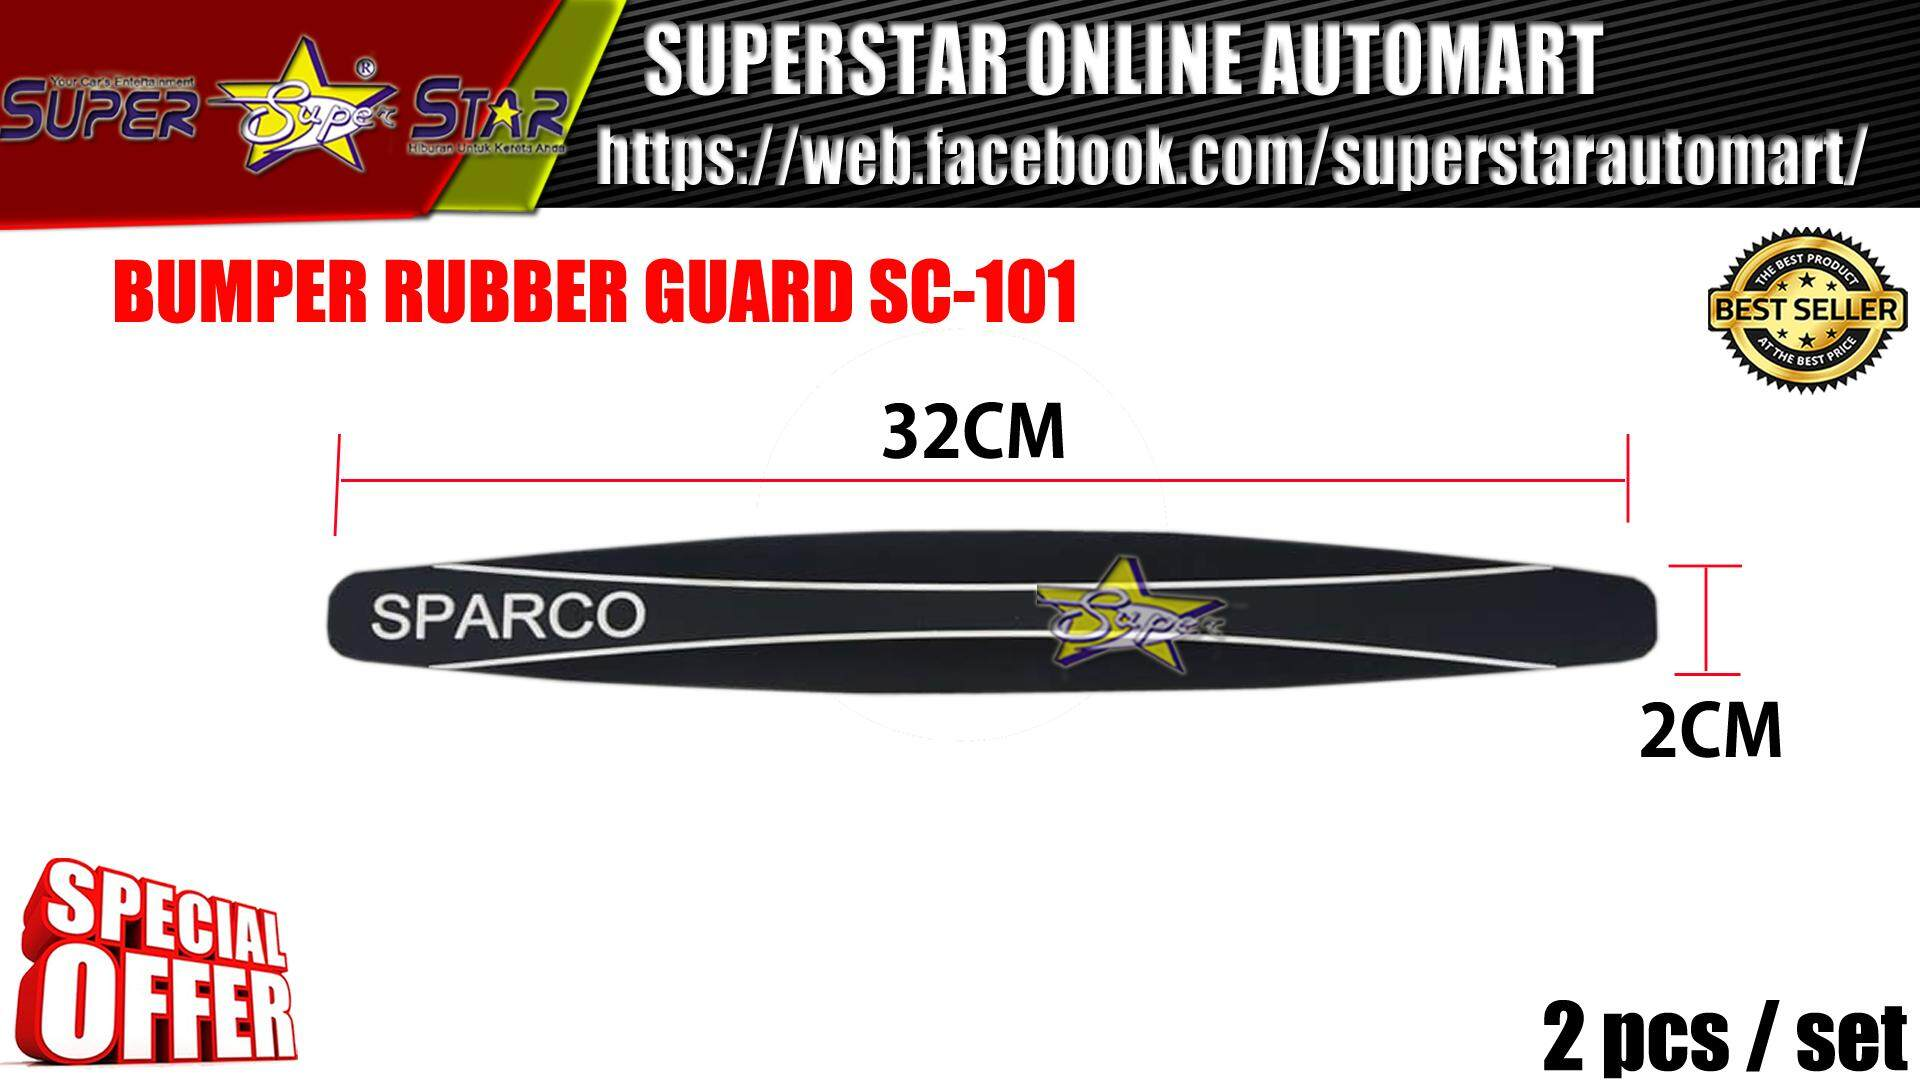 BUMPER RUBBER GUARD SPARCO (BLACK)